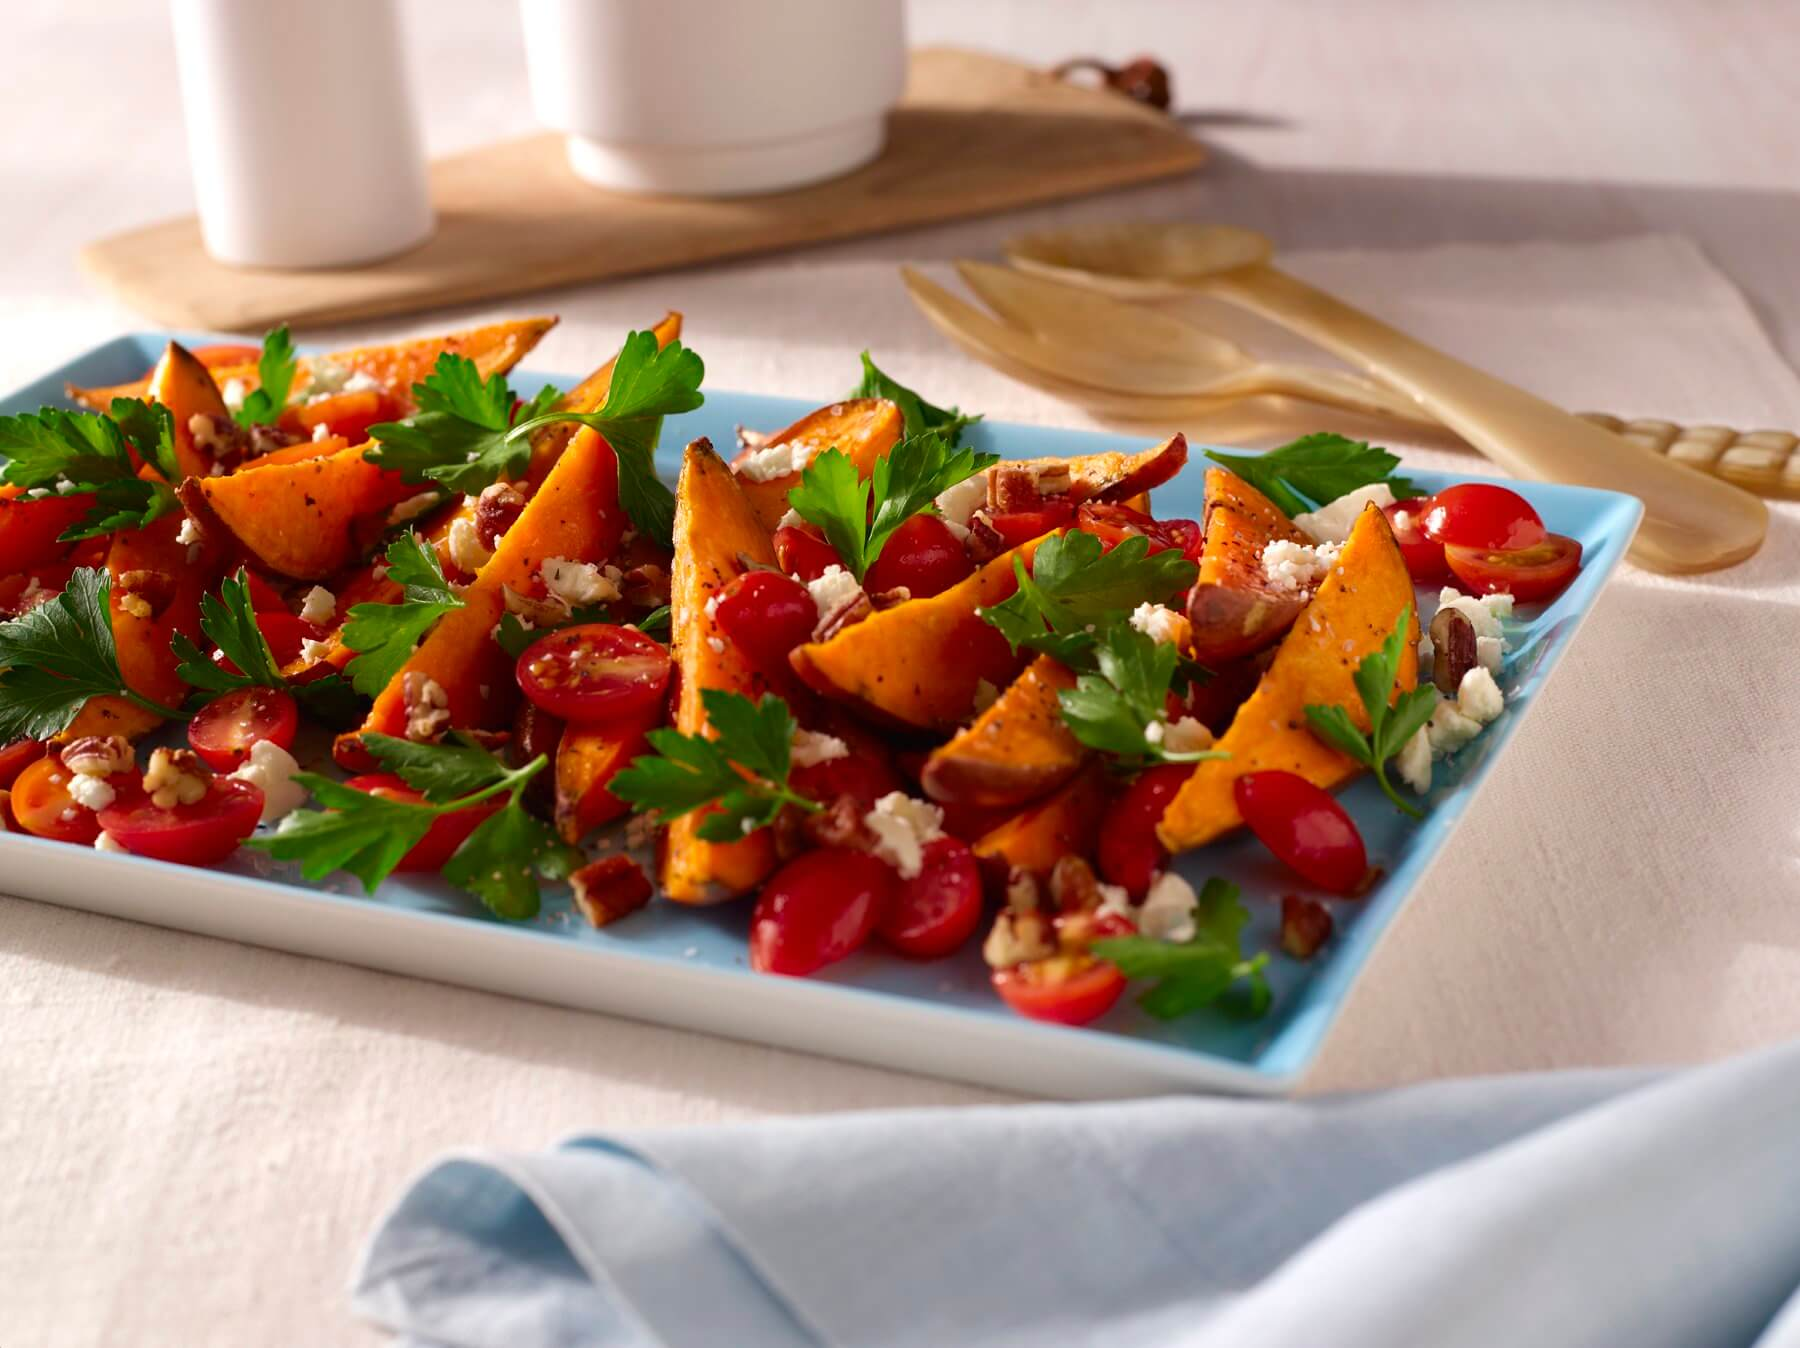 Sweet Potato Wedges with Parsley Salad